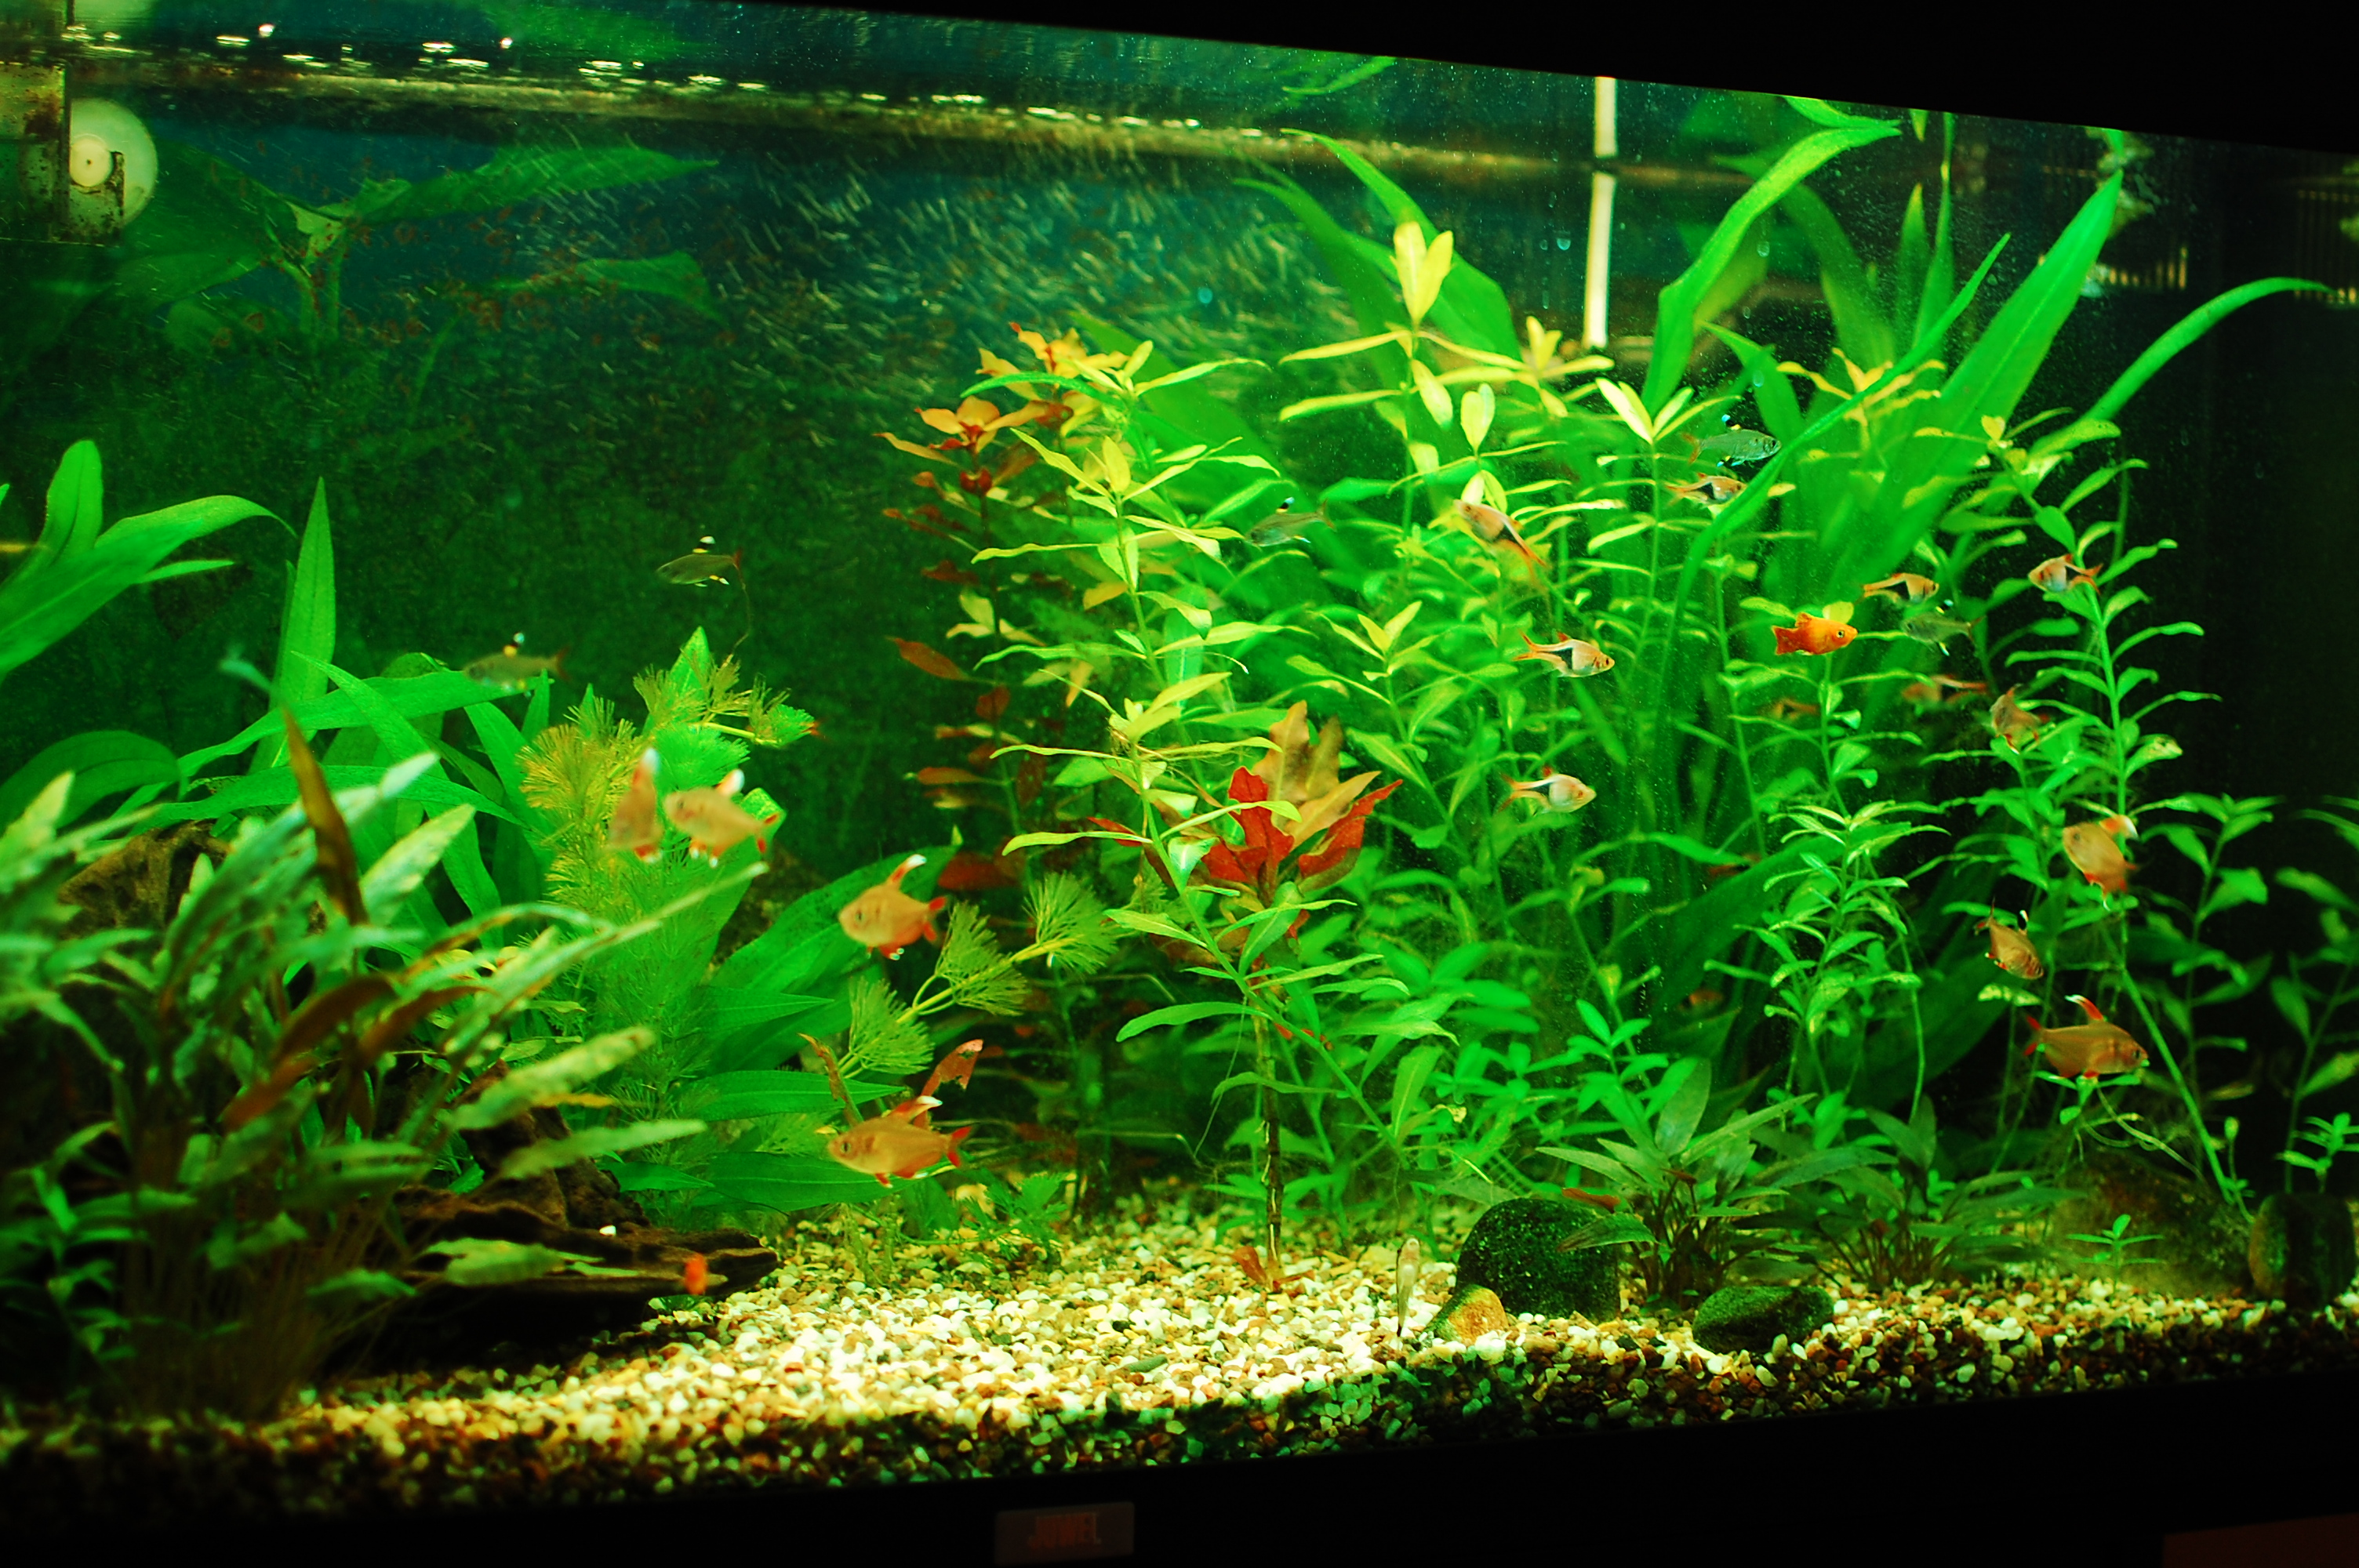 Freshwater aquarium fish tank pictures - Our Freshwater Aquarium 30 7 2011